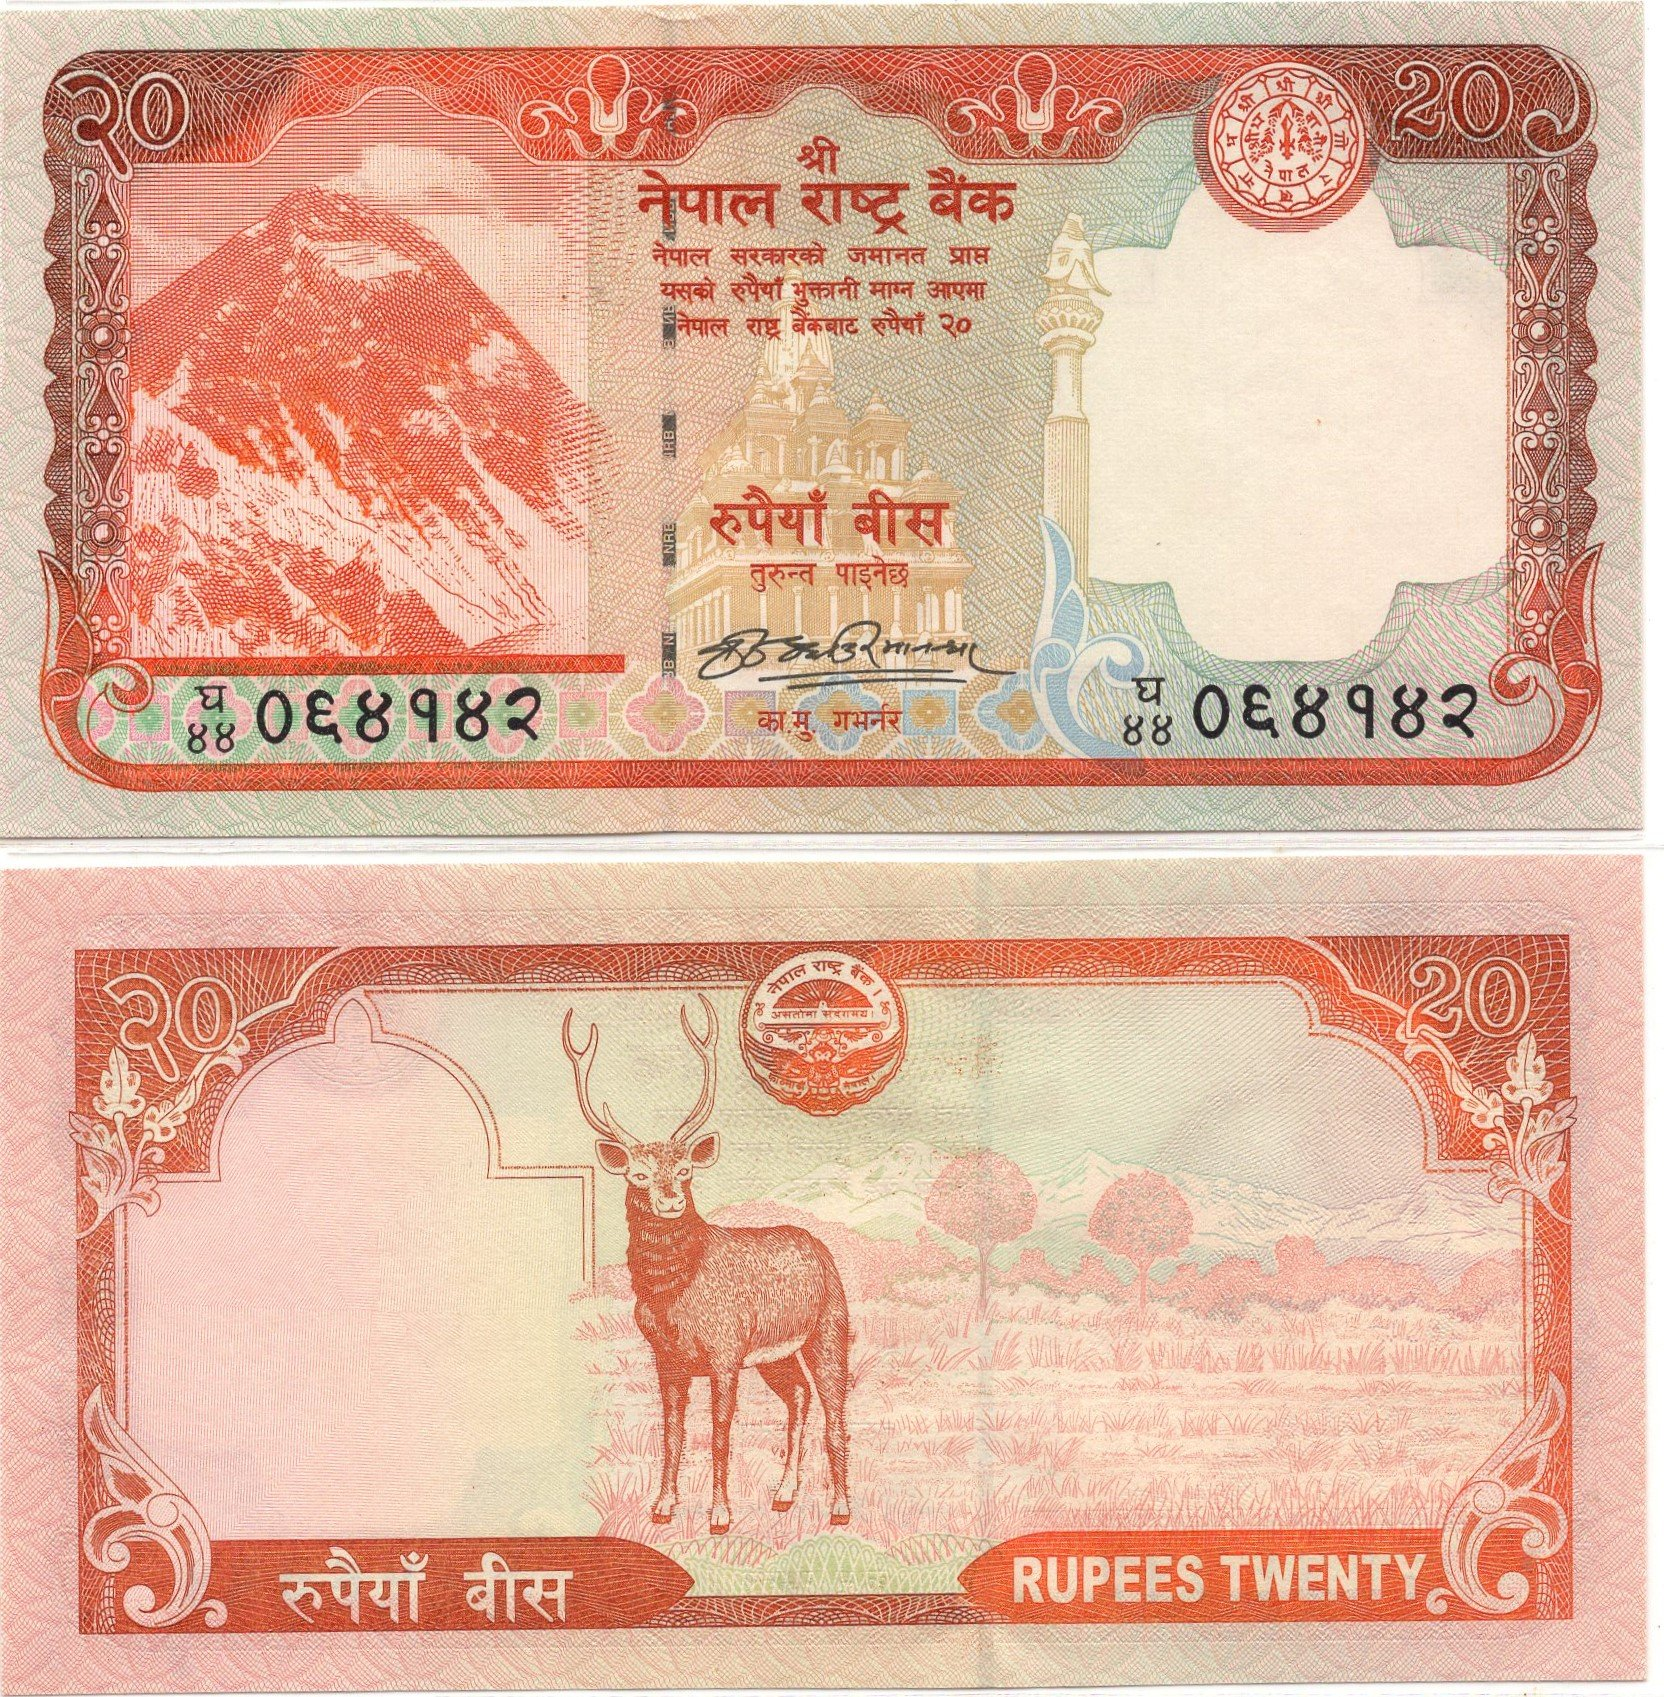 Nepal 20 rupees 2012 banknote for sale